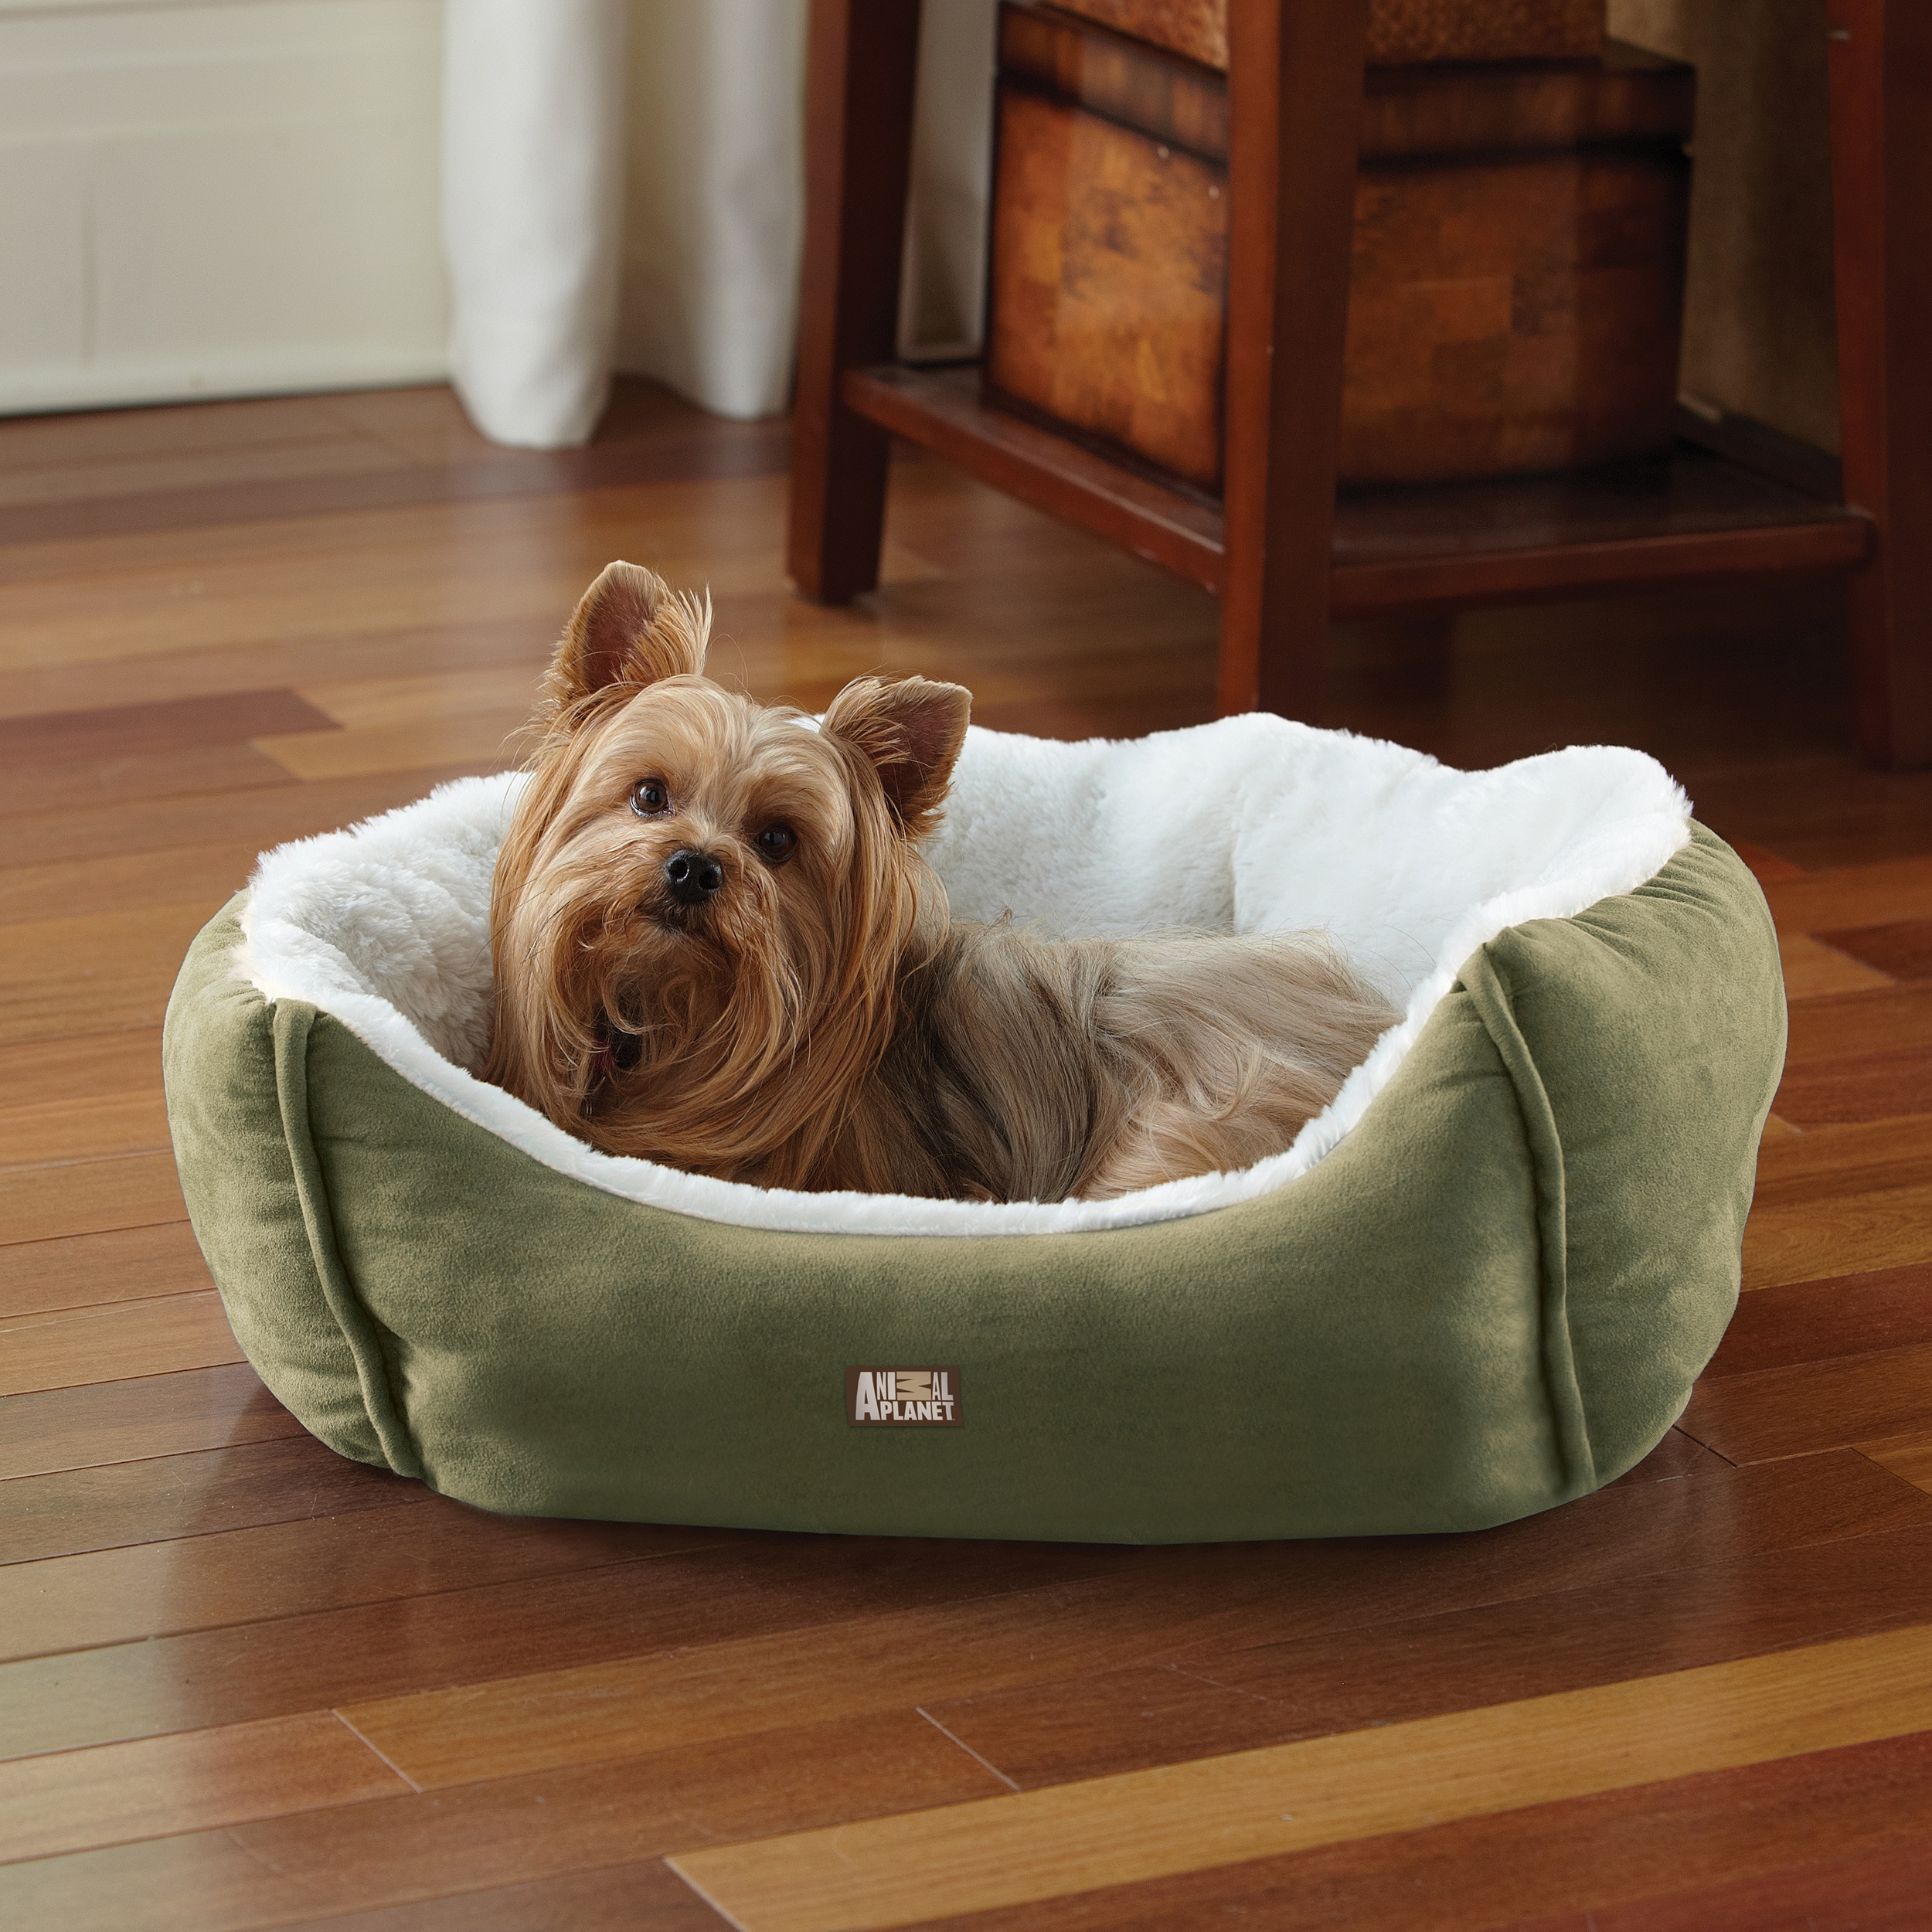 beds luxury cushion basket sentinel fleece dogs soft bunty large for dog warm pet medium logo fur washable bed itm polar